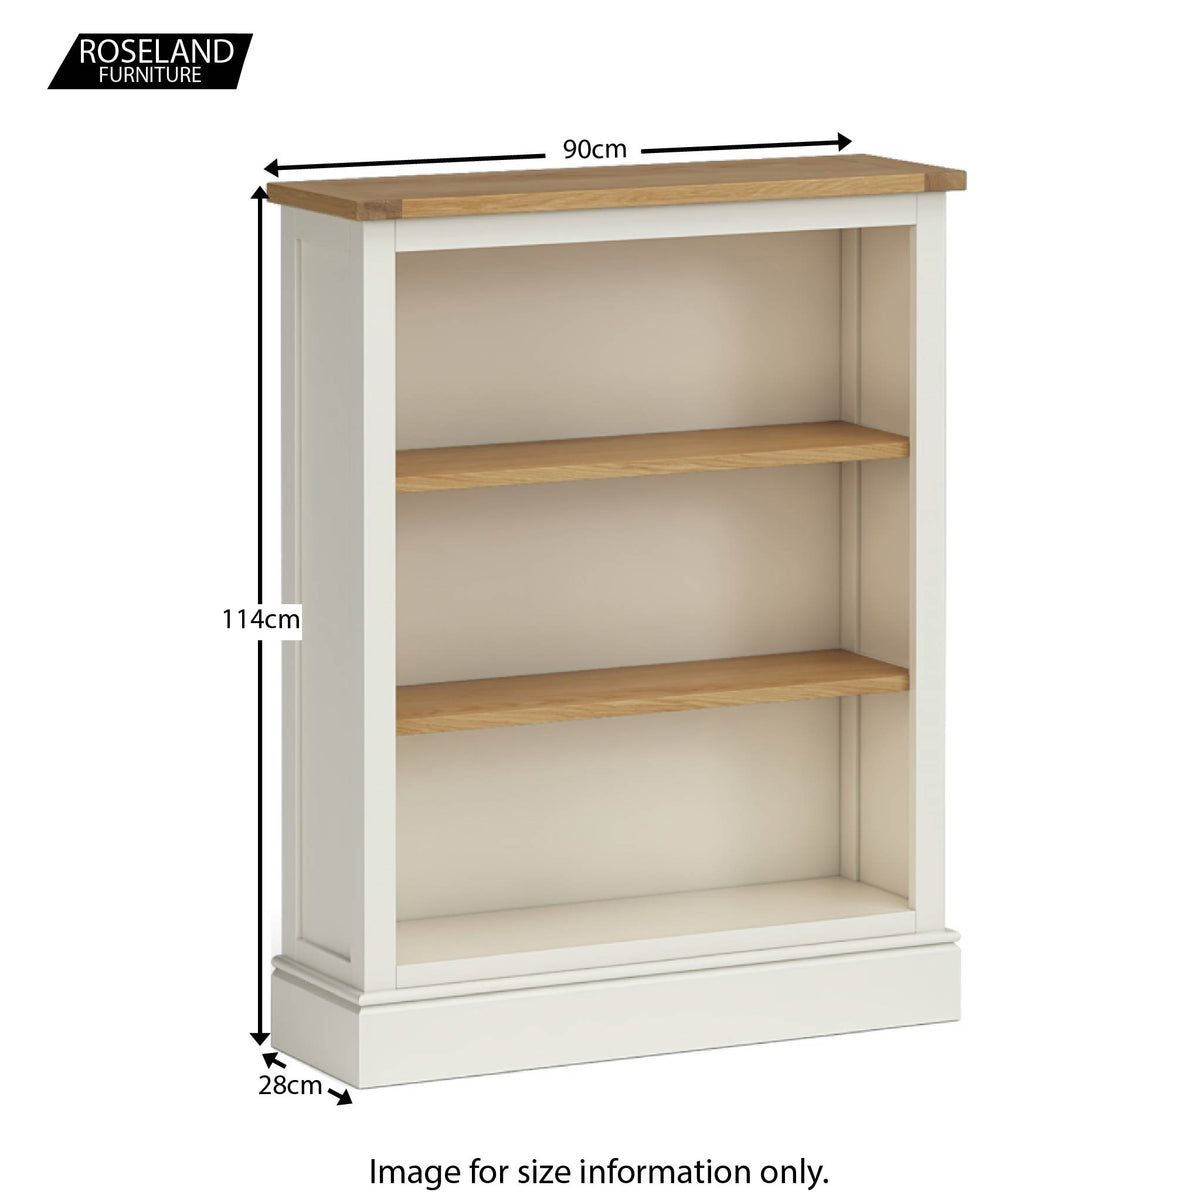 Chichester Small Bookcase in Ivory - Size Guide